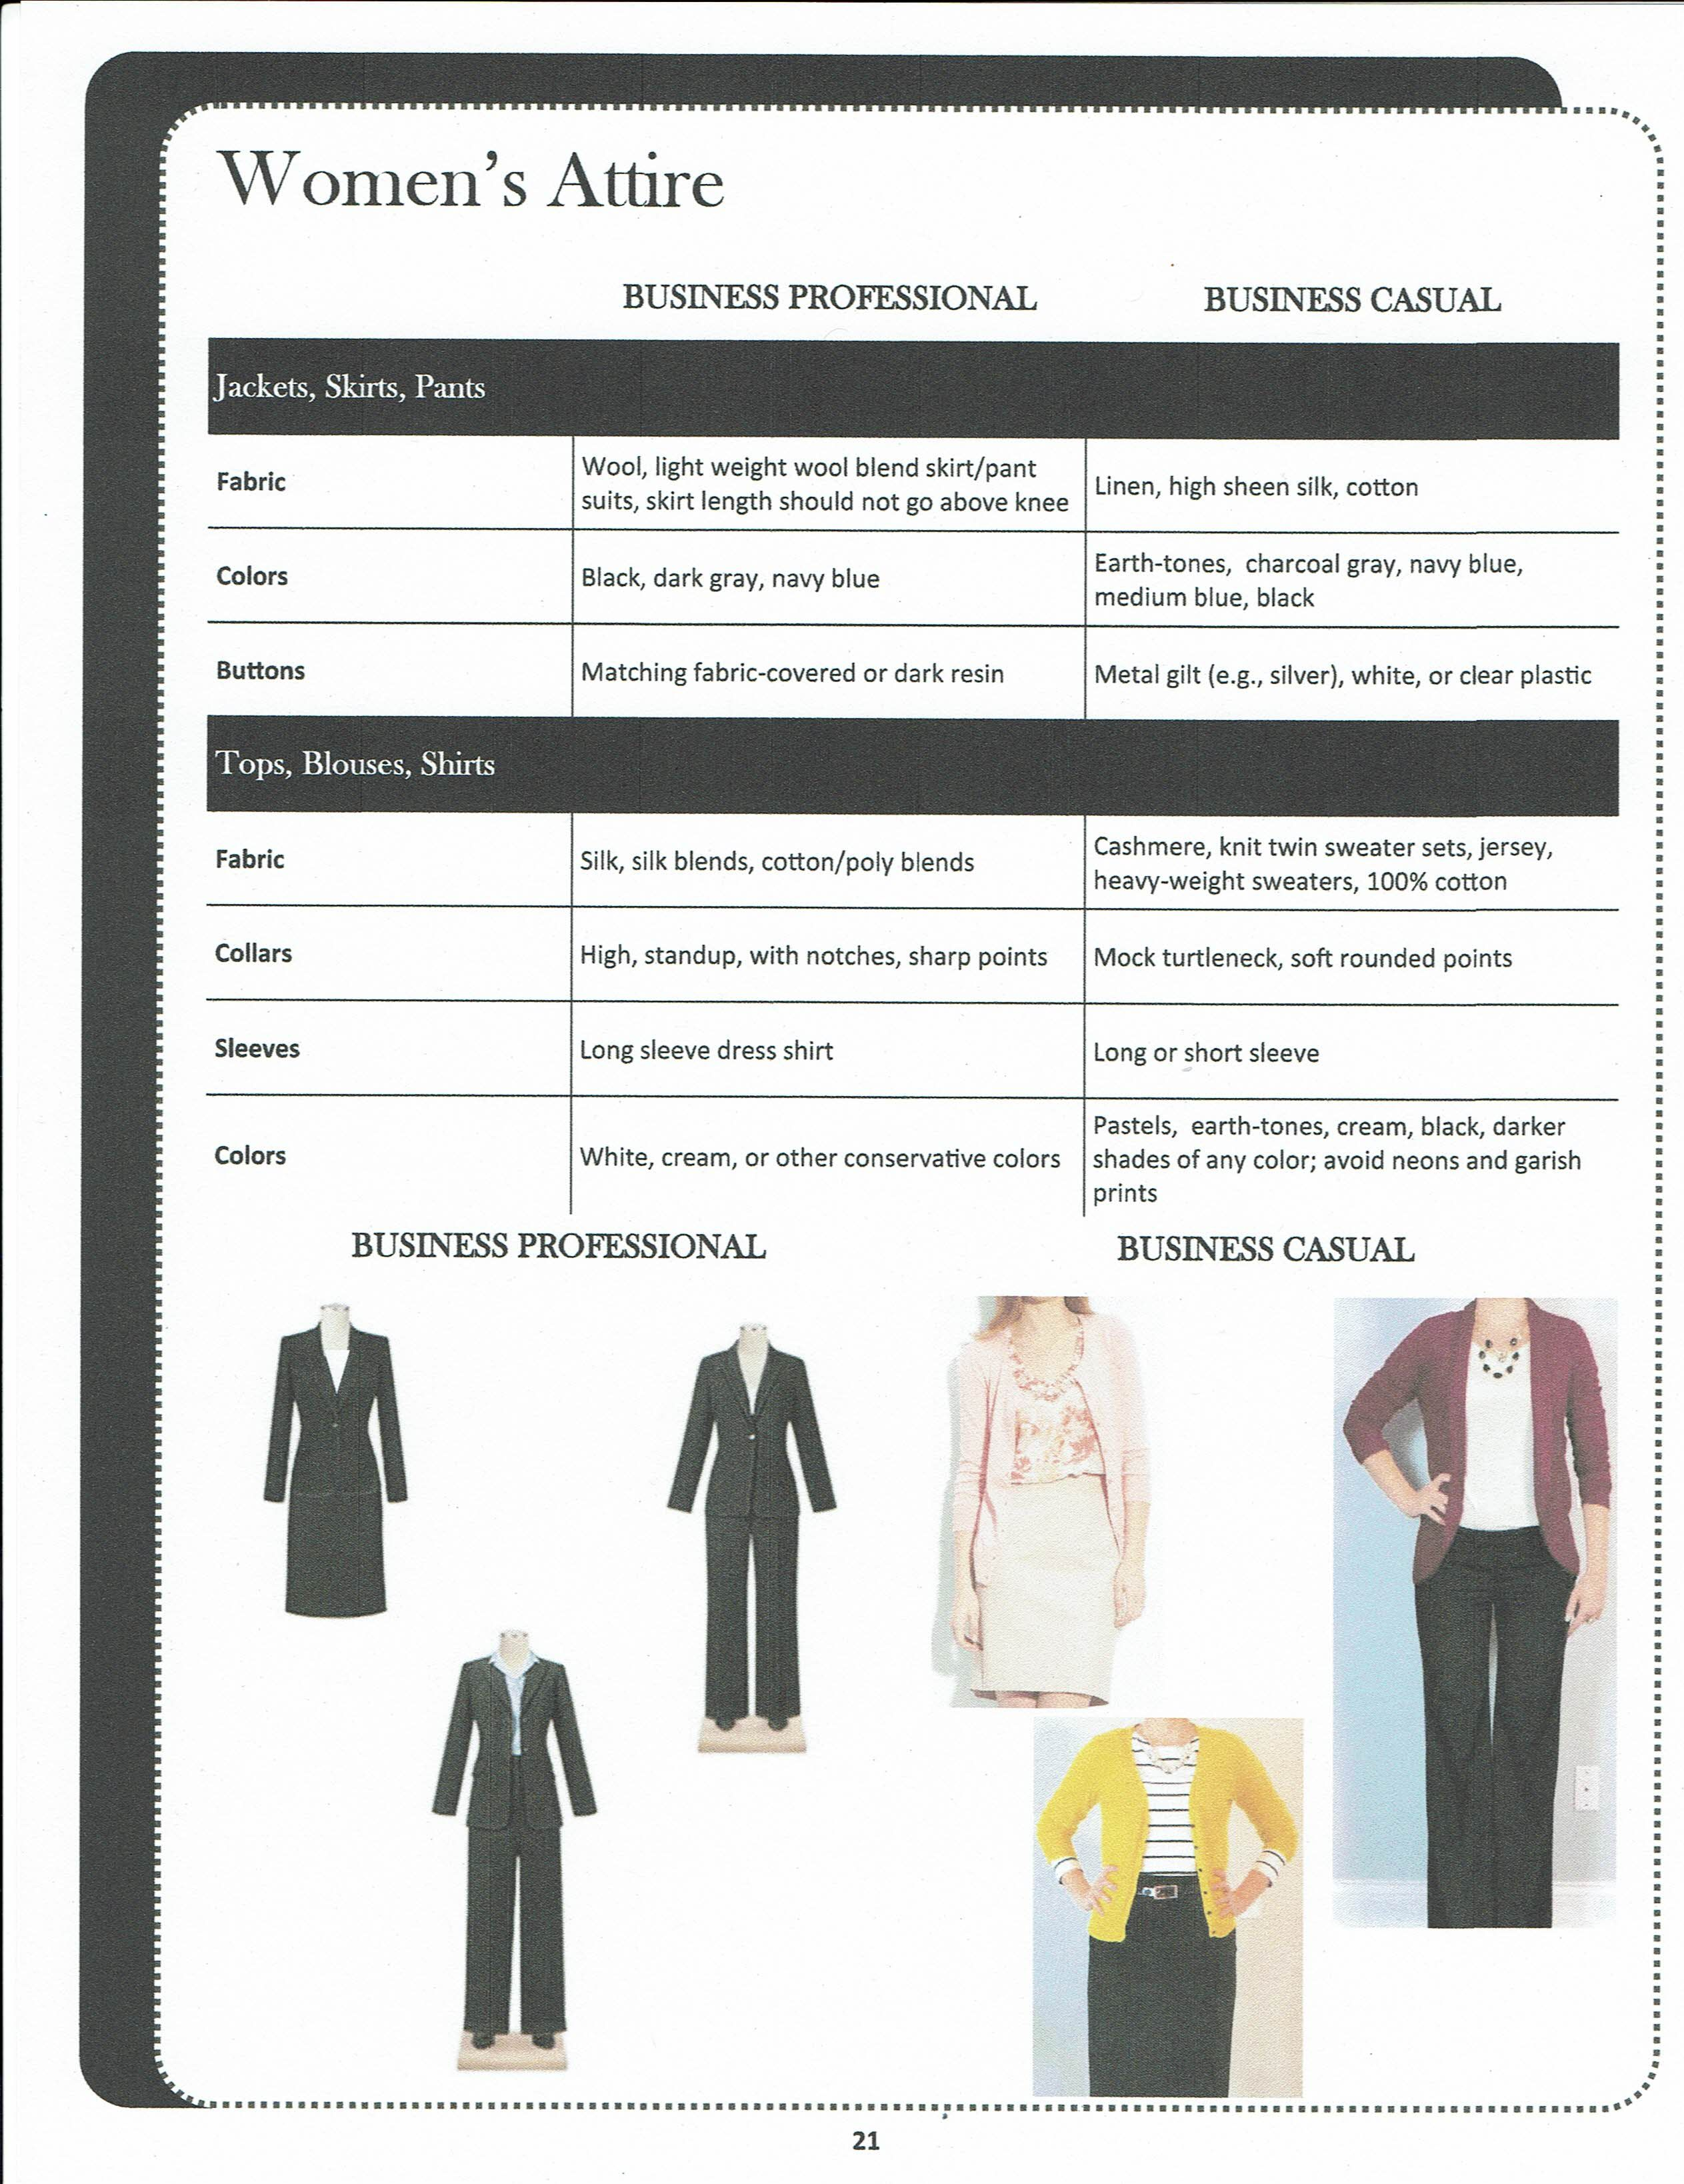 See How UT The McCombs School Of Business At The University Of Texas  Explains It. Find Your Business Perfect Fashions And Save At Closet Revival  ...